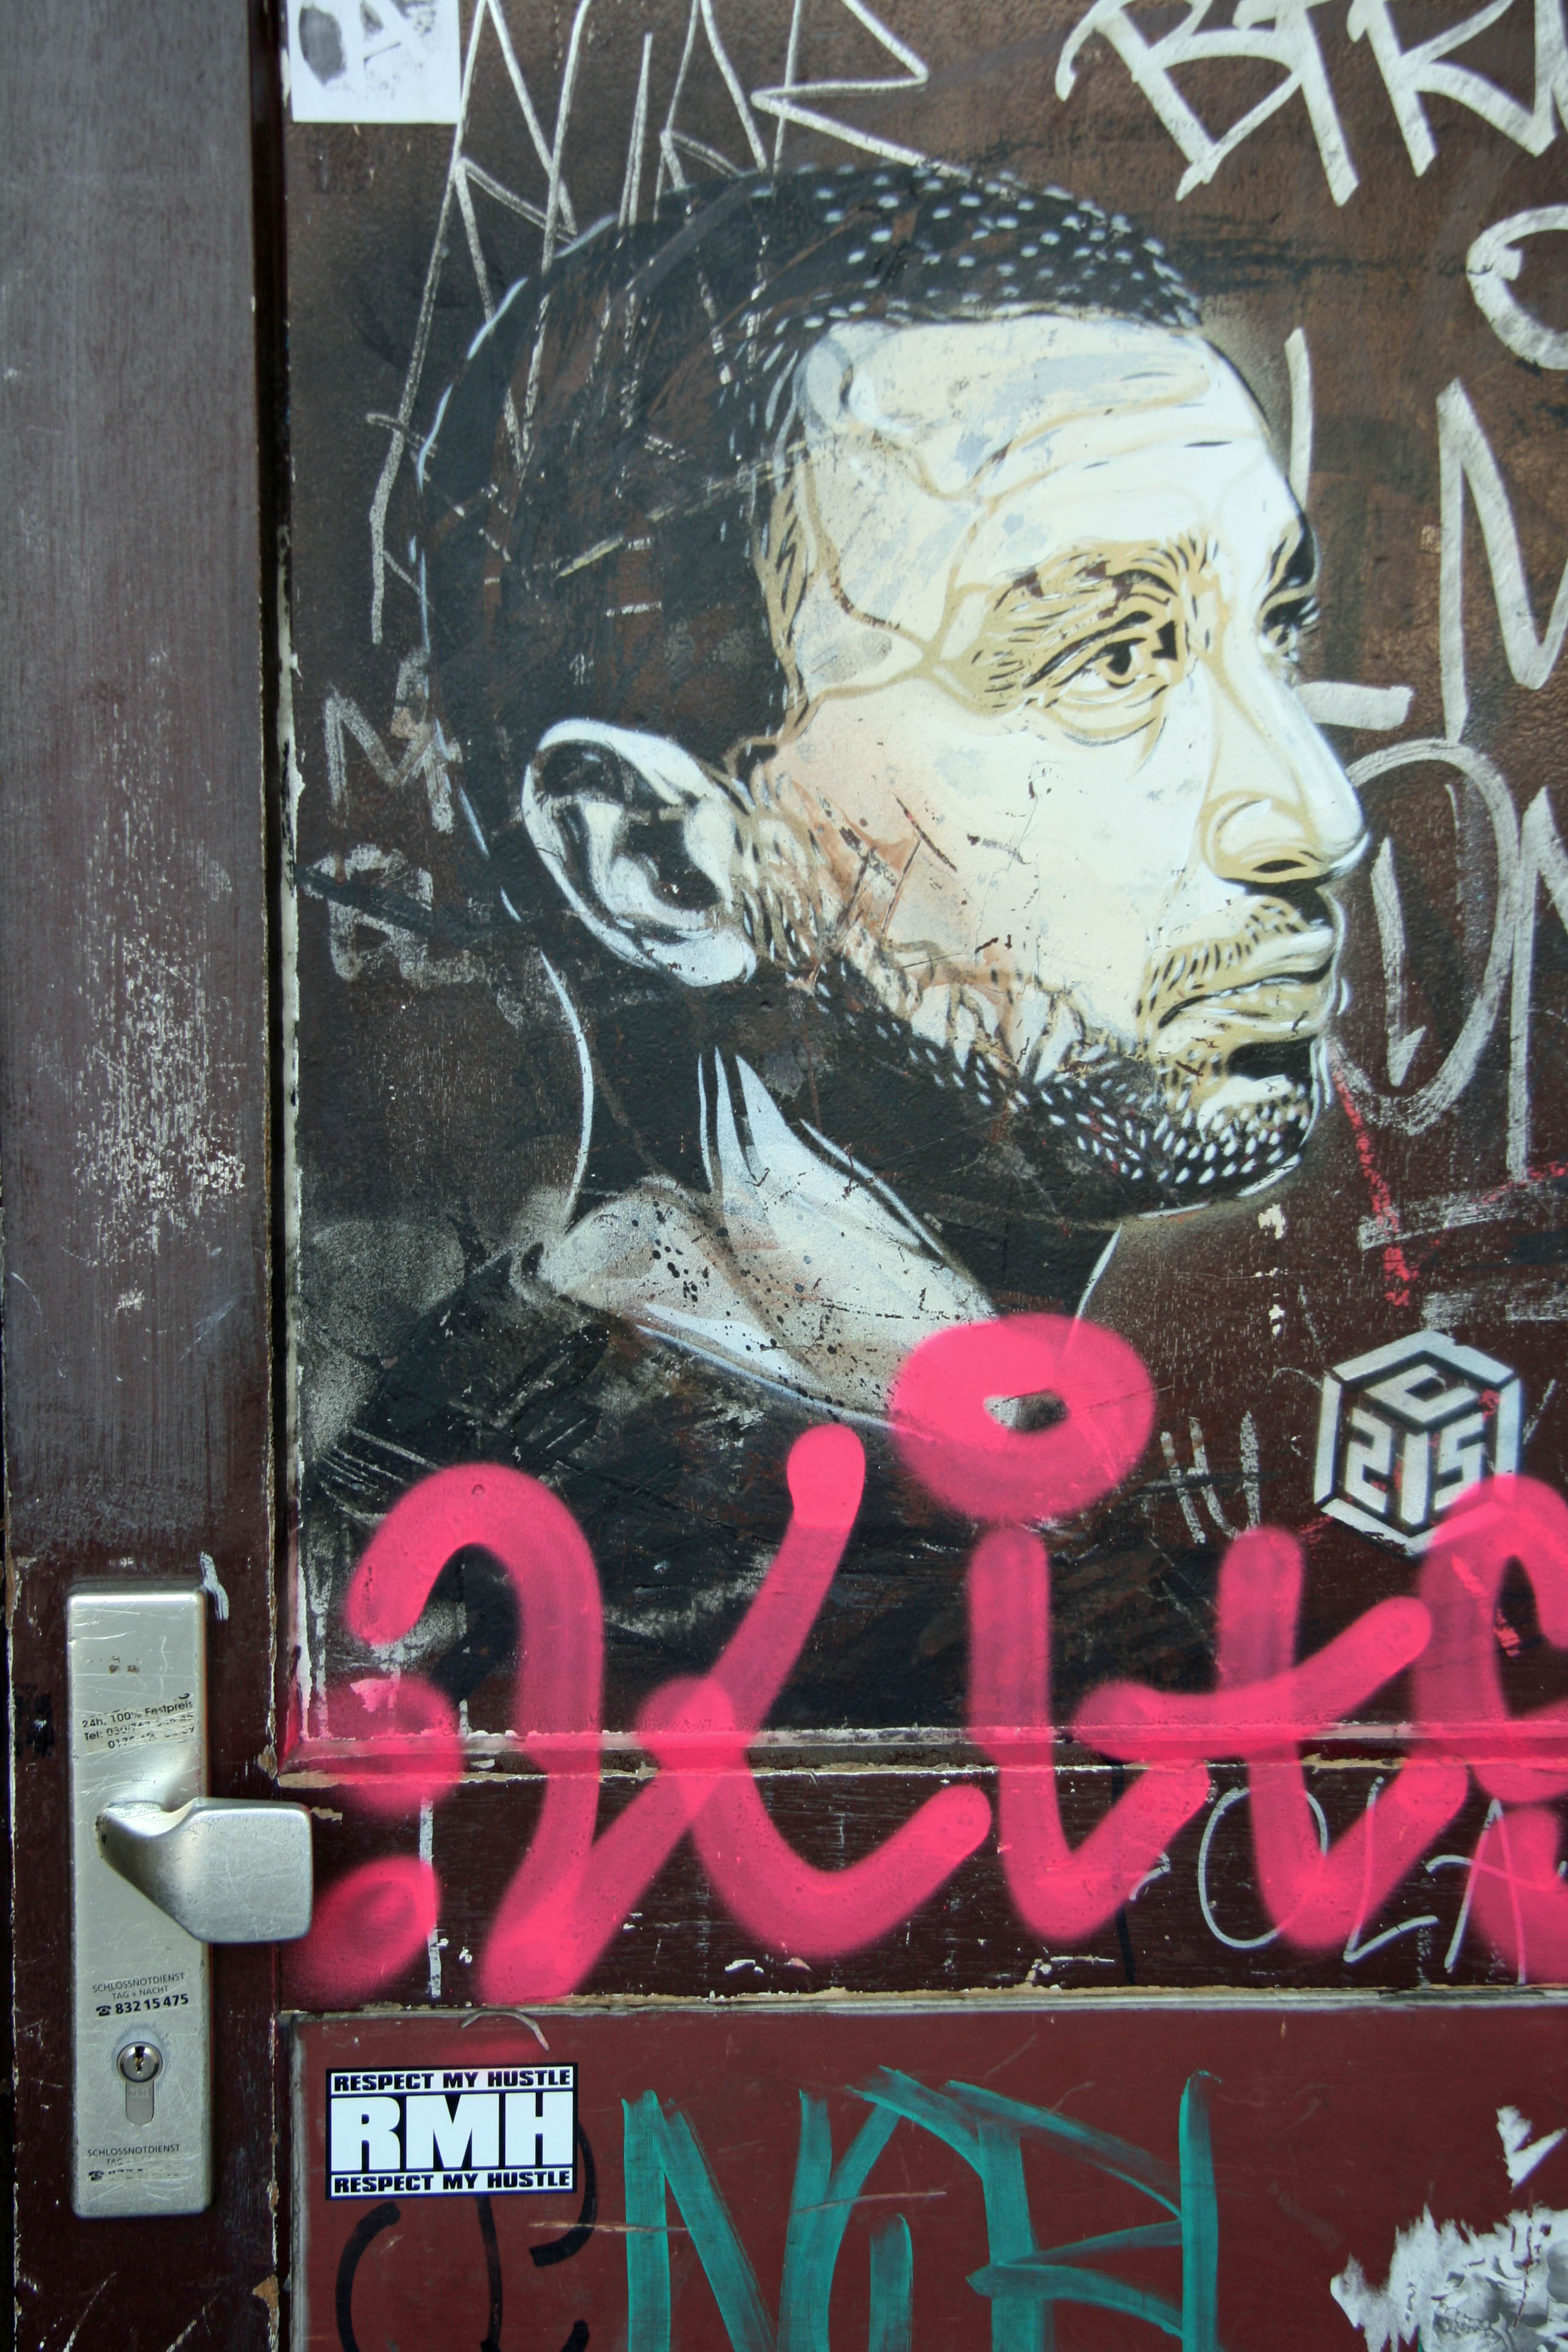 Profile: Street Art by C215 in Berlin